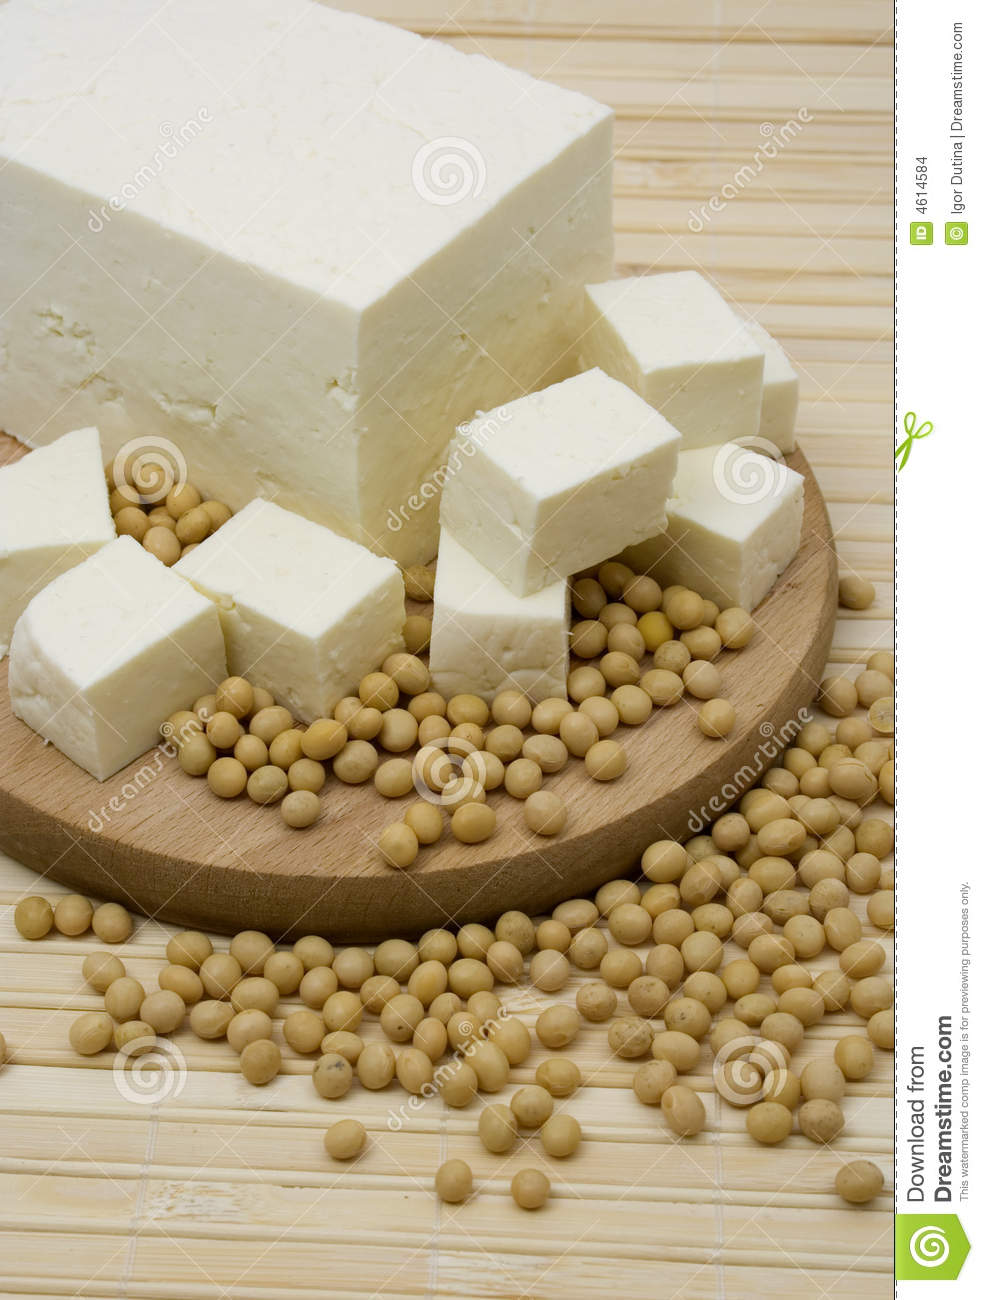 Tofu Cheese And Soy Beans Stock Images - Image: 4614584